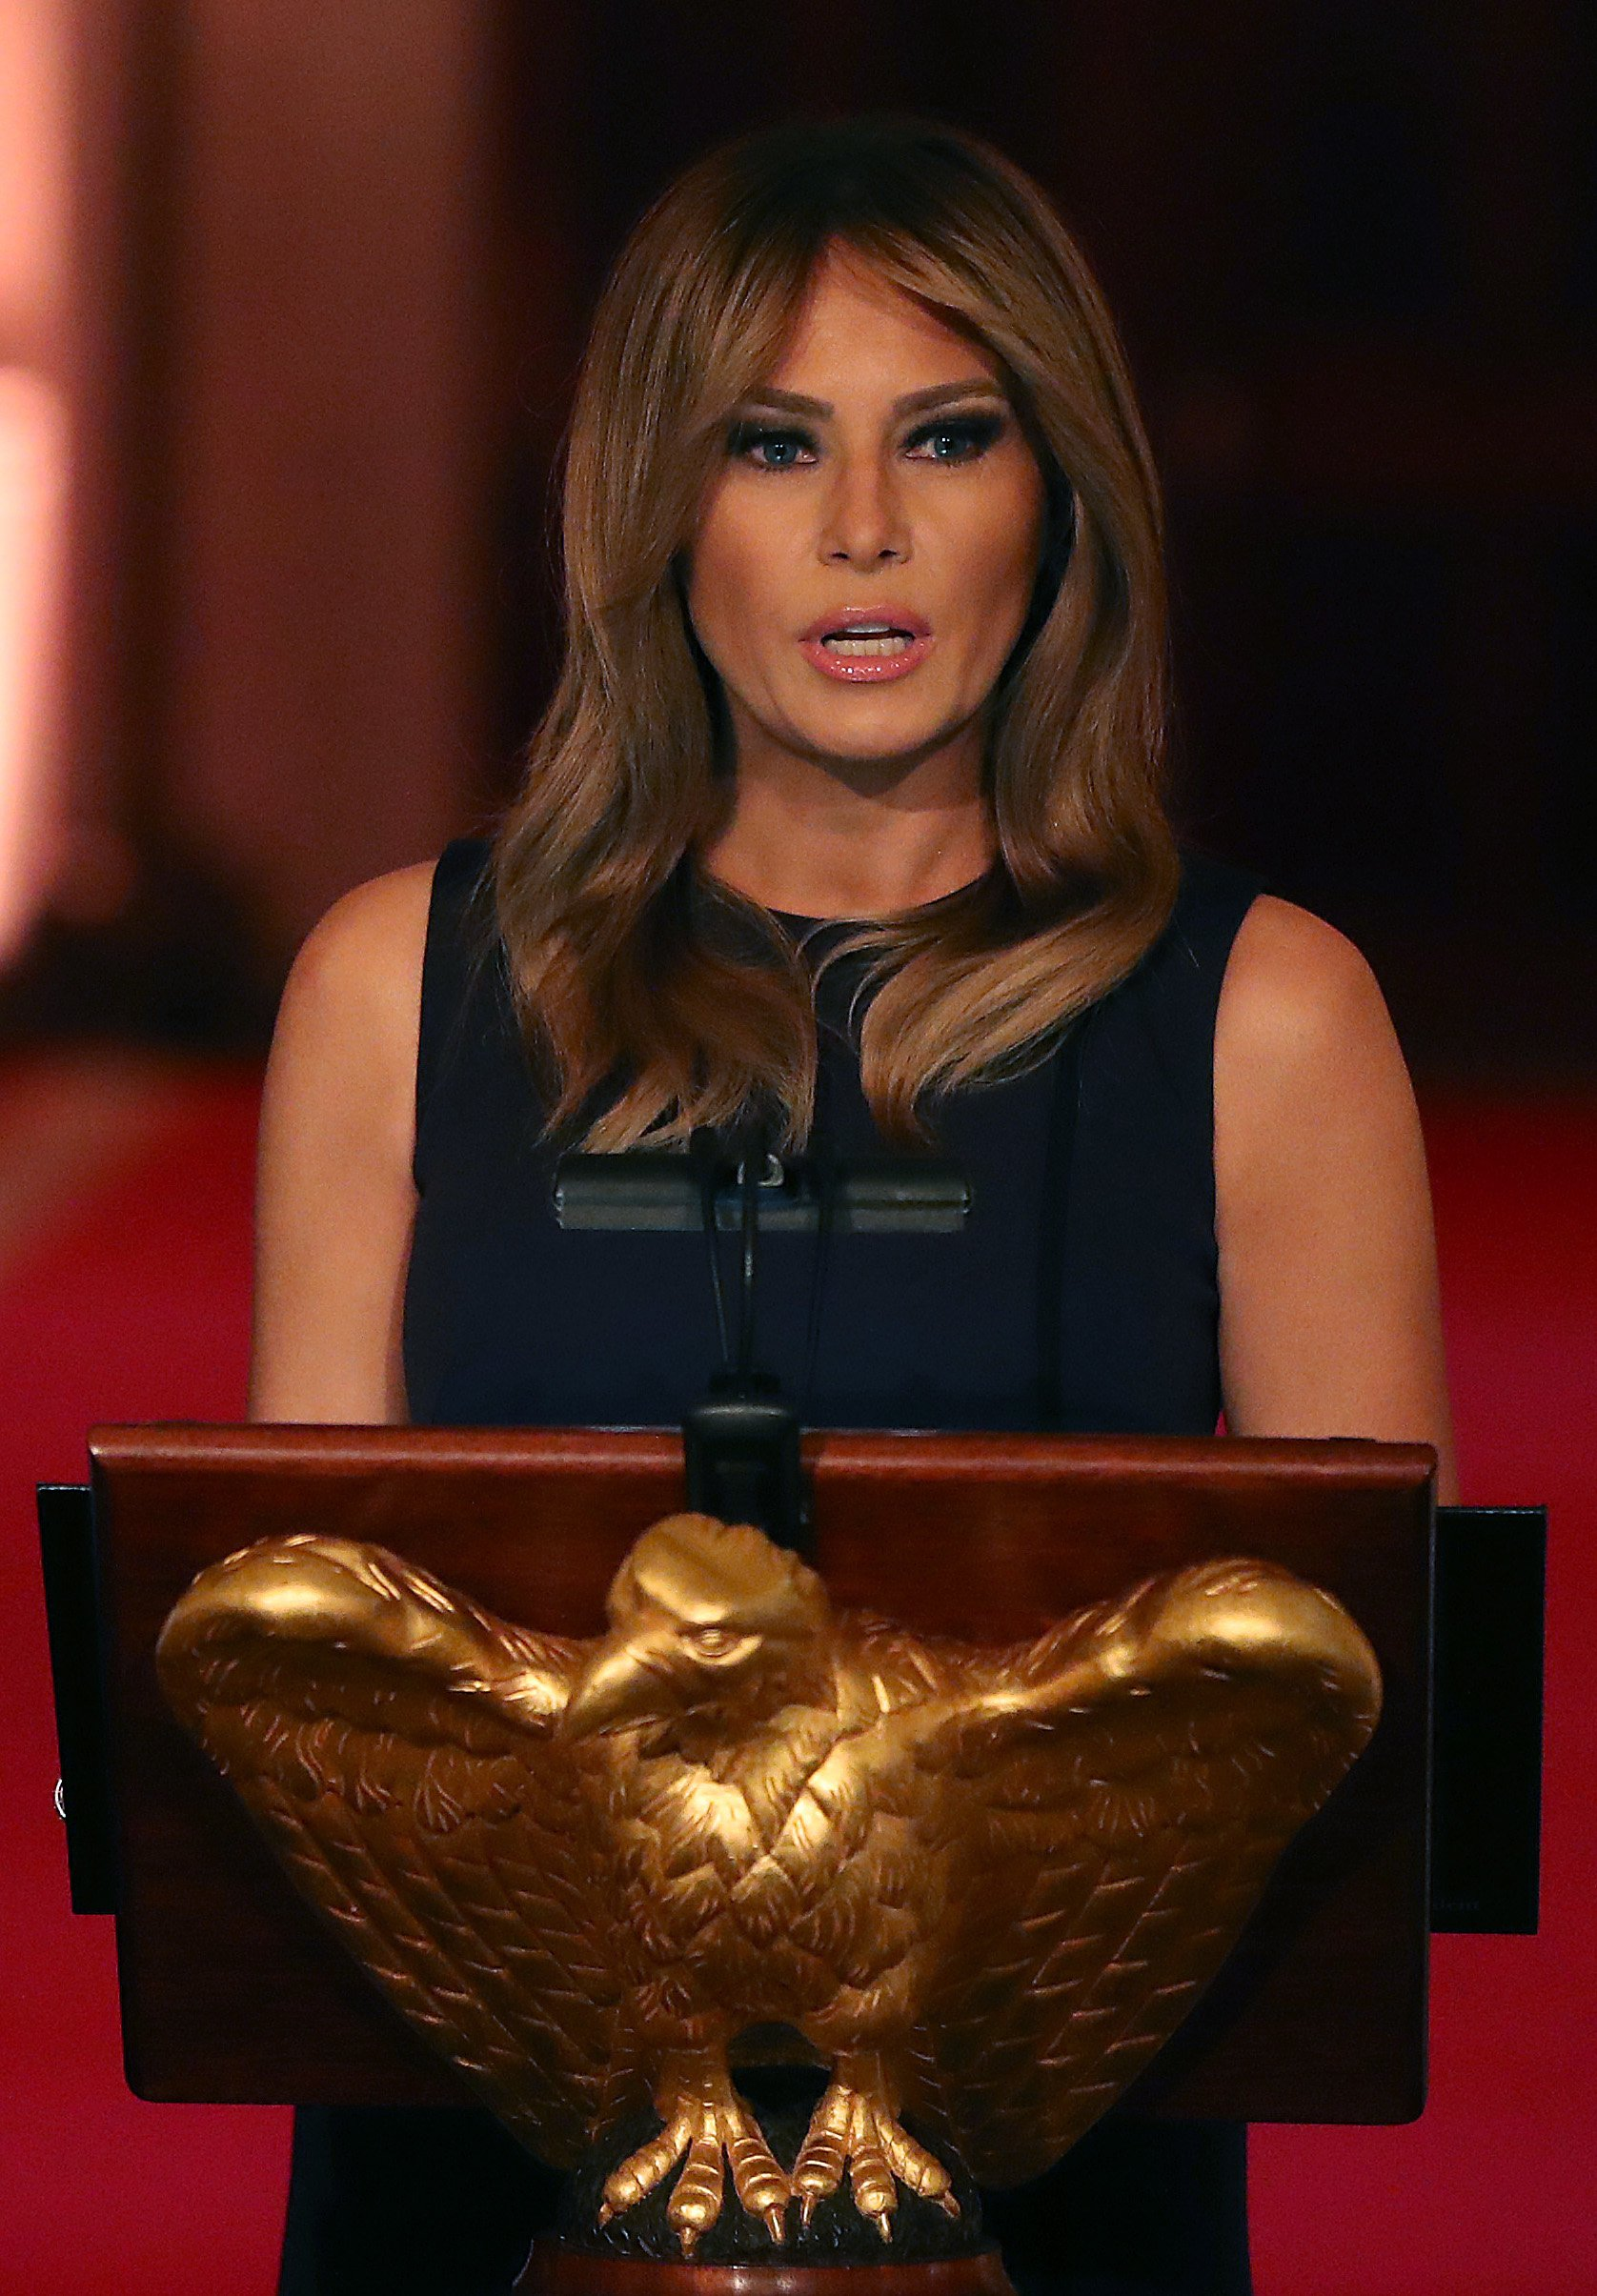 Melania Trump speaks during the White House Historical Association Dinner in the East Room of the White House on May 15, 2019, in Washington, DC. | Source: Getty Images.